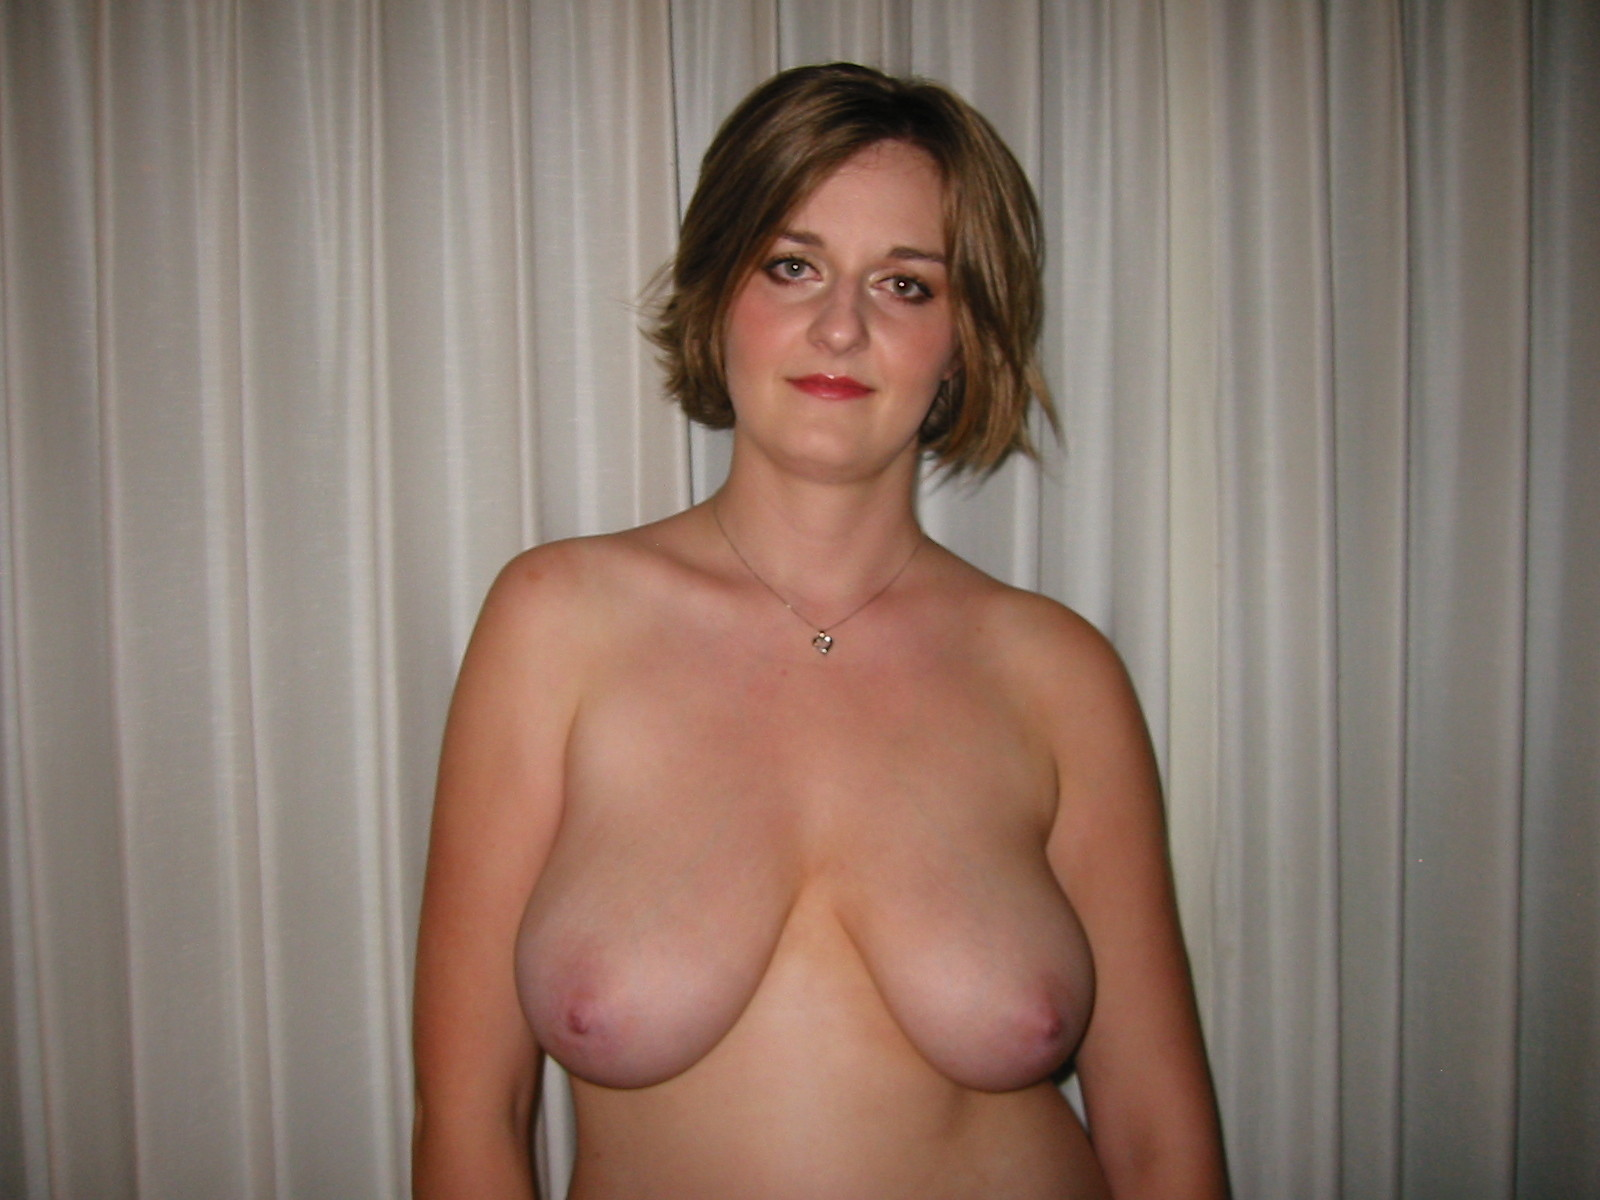 Milf Movies Amature Teen 73